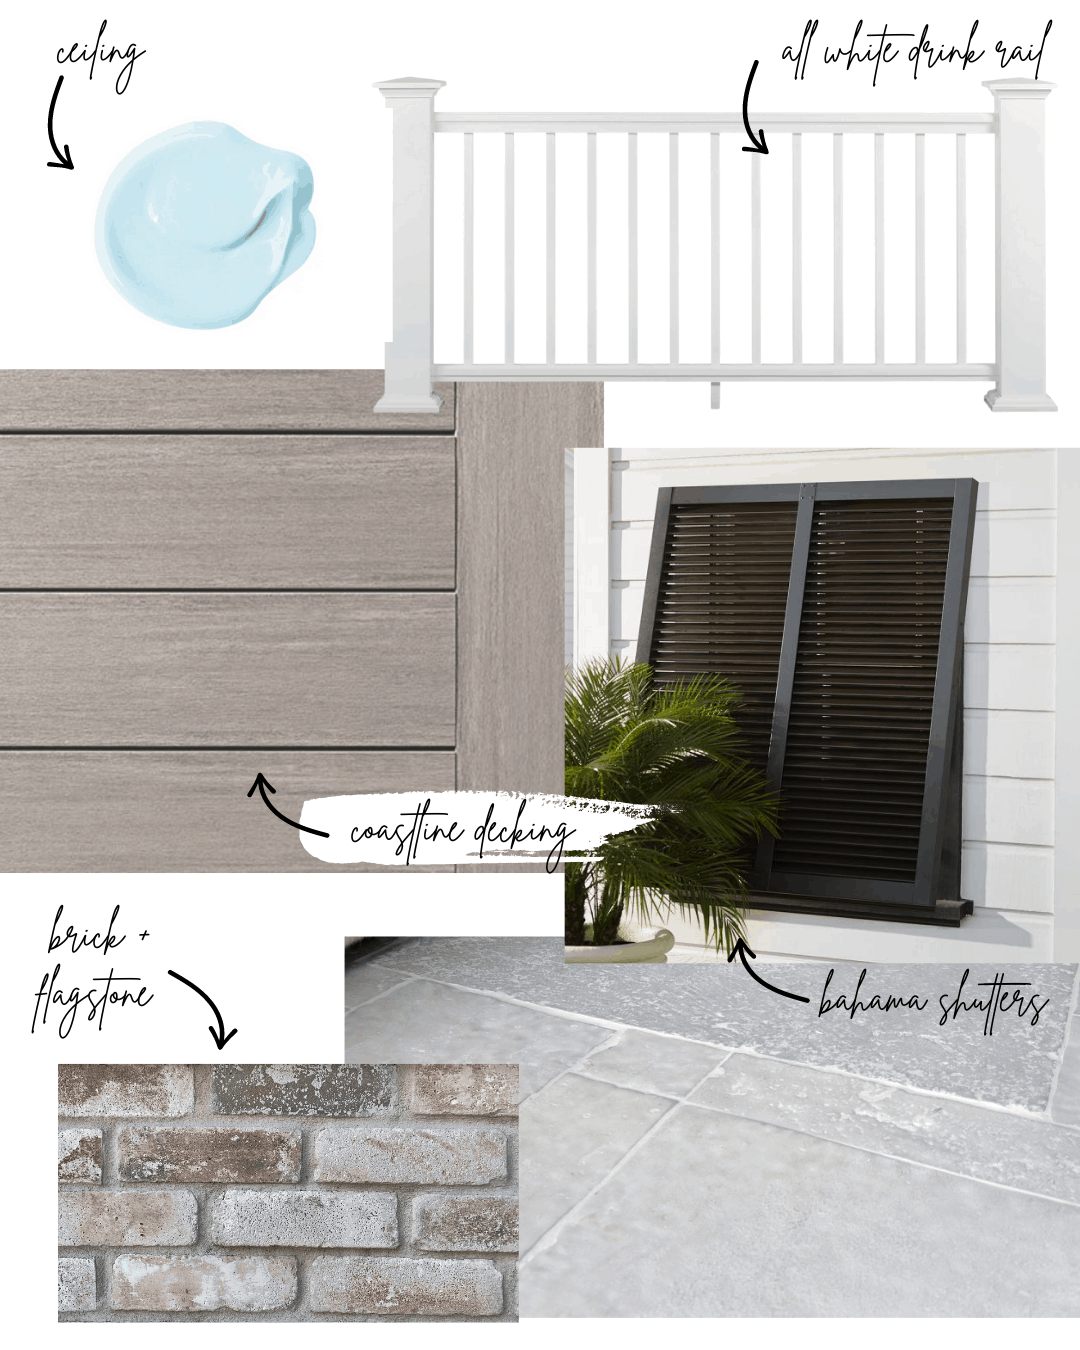 Backyard makeover design with flagstone, whitewashed brick, driftwood desk, and Bahama shutters.